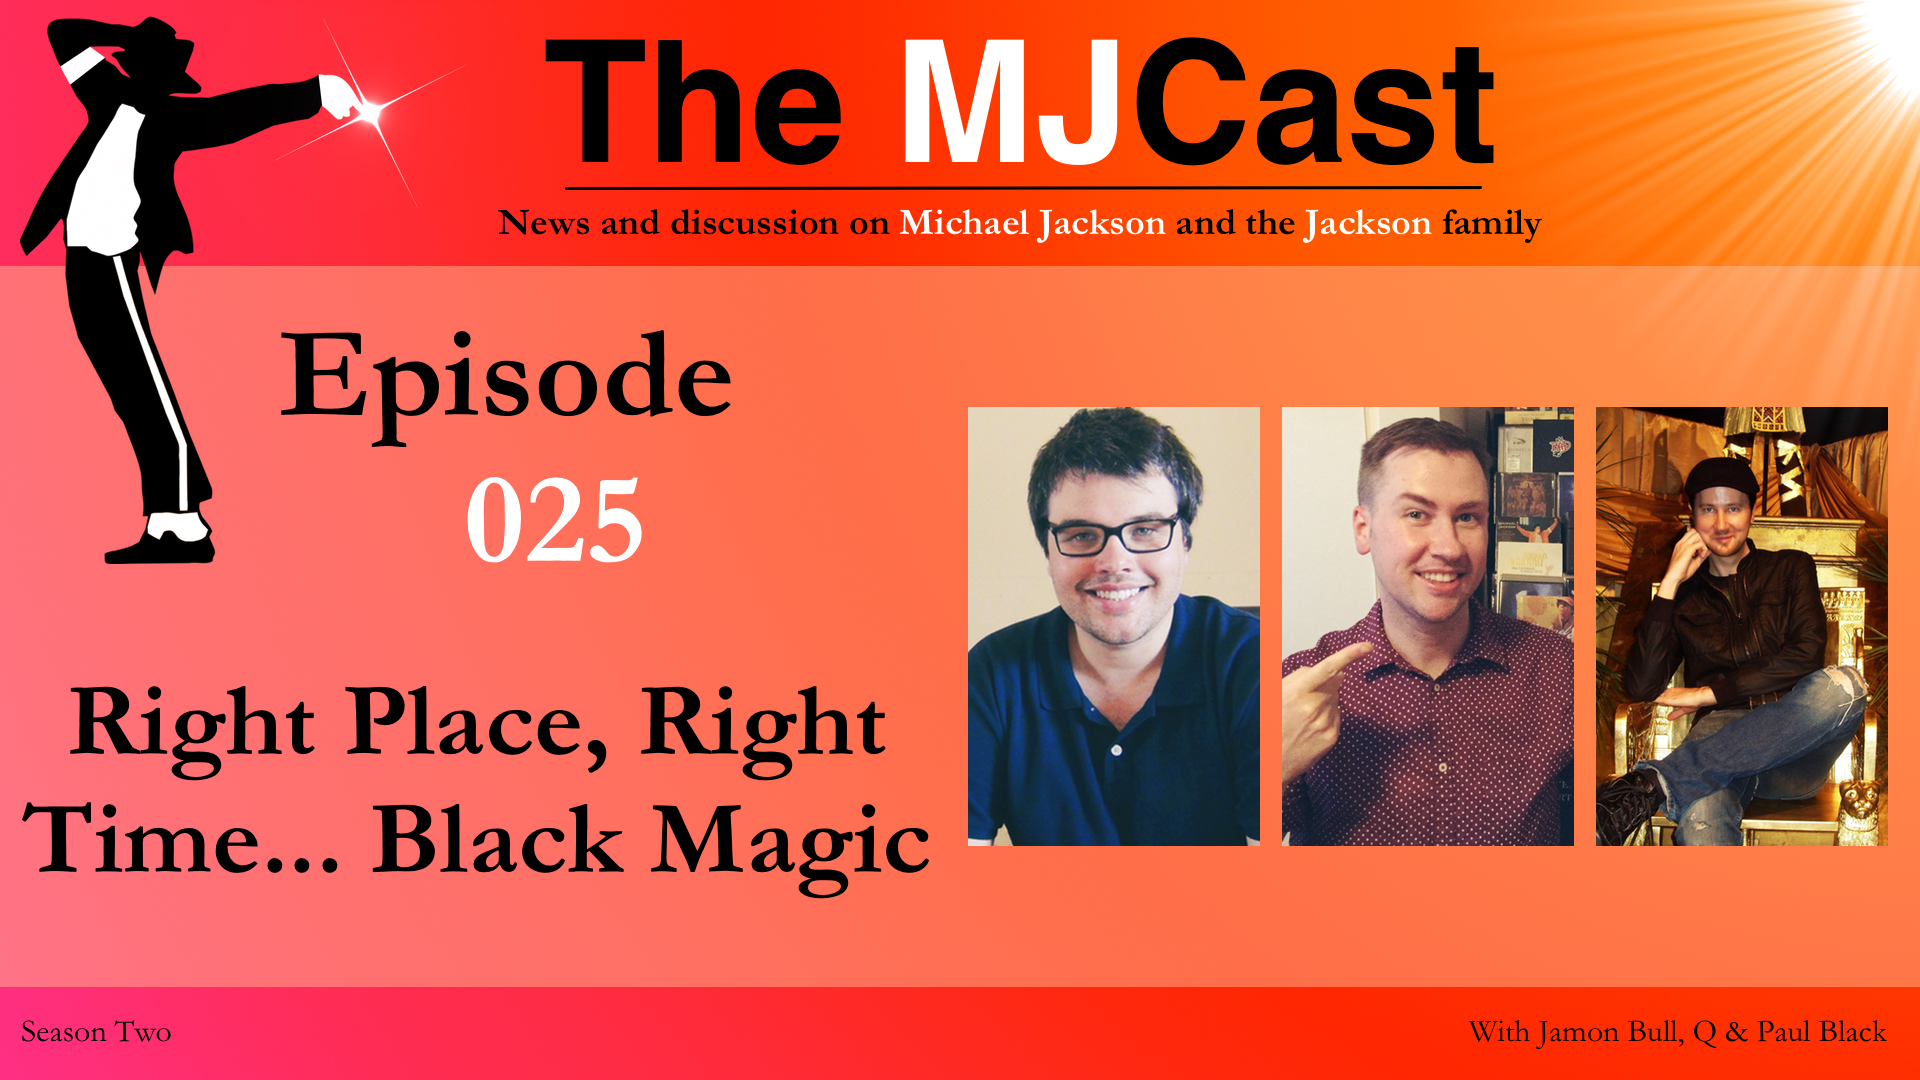 Episode 025 - Right Place, Right Time... Black Magic YouTube Art